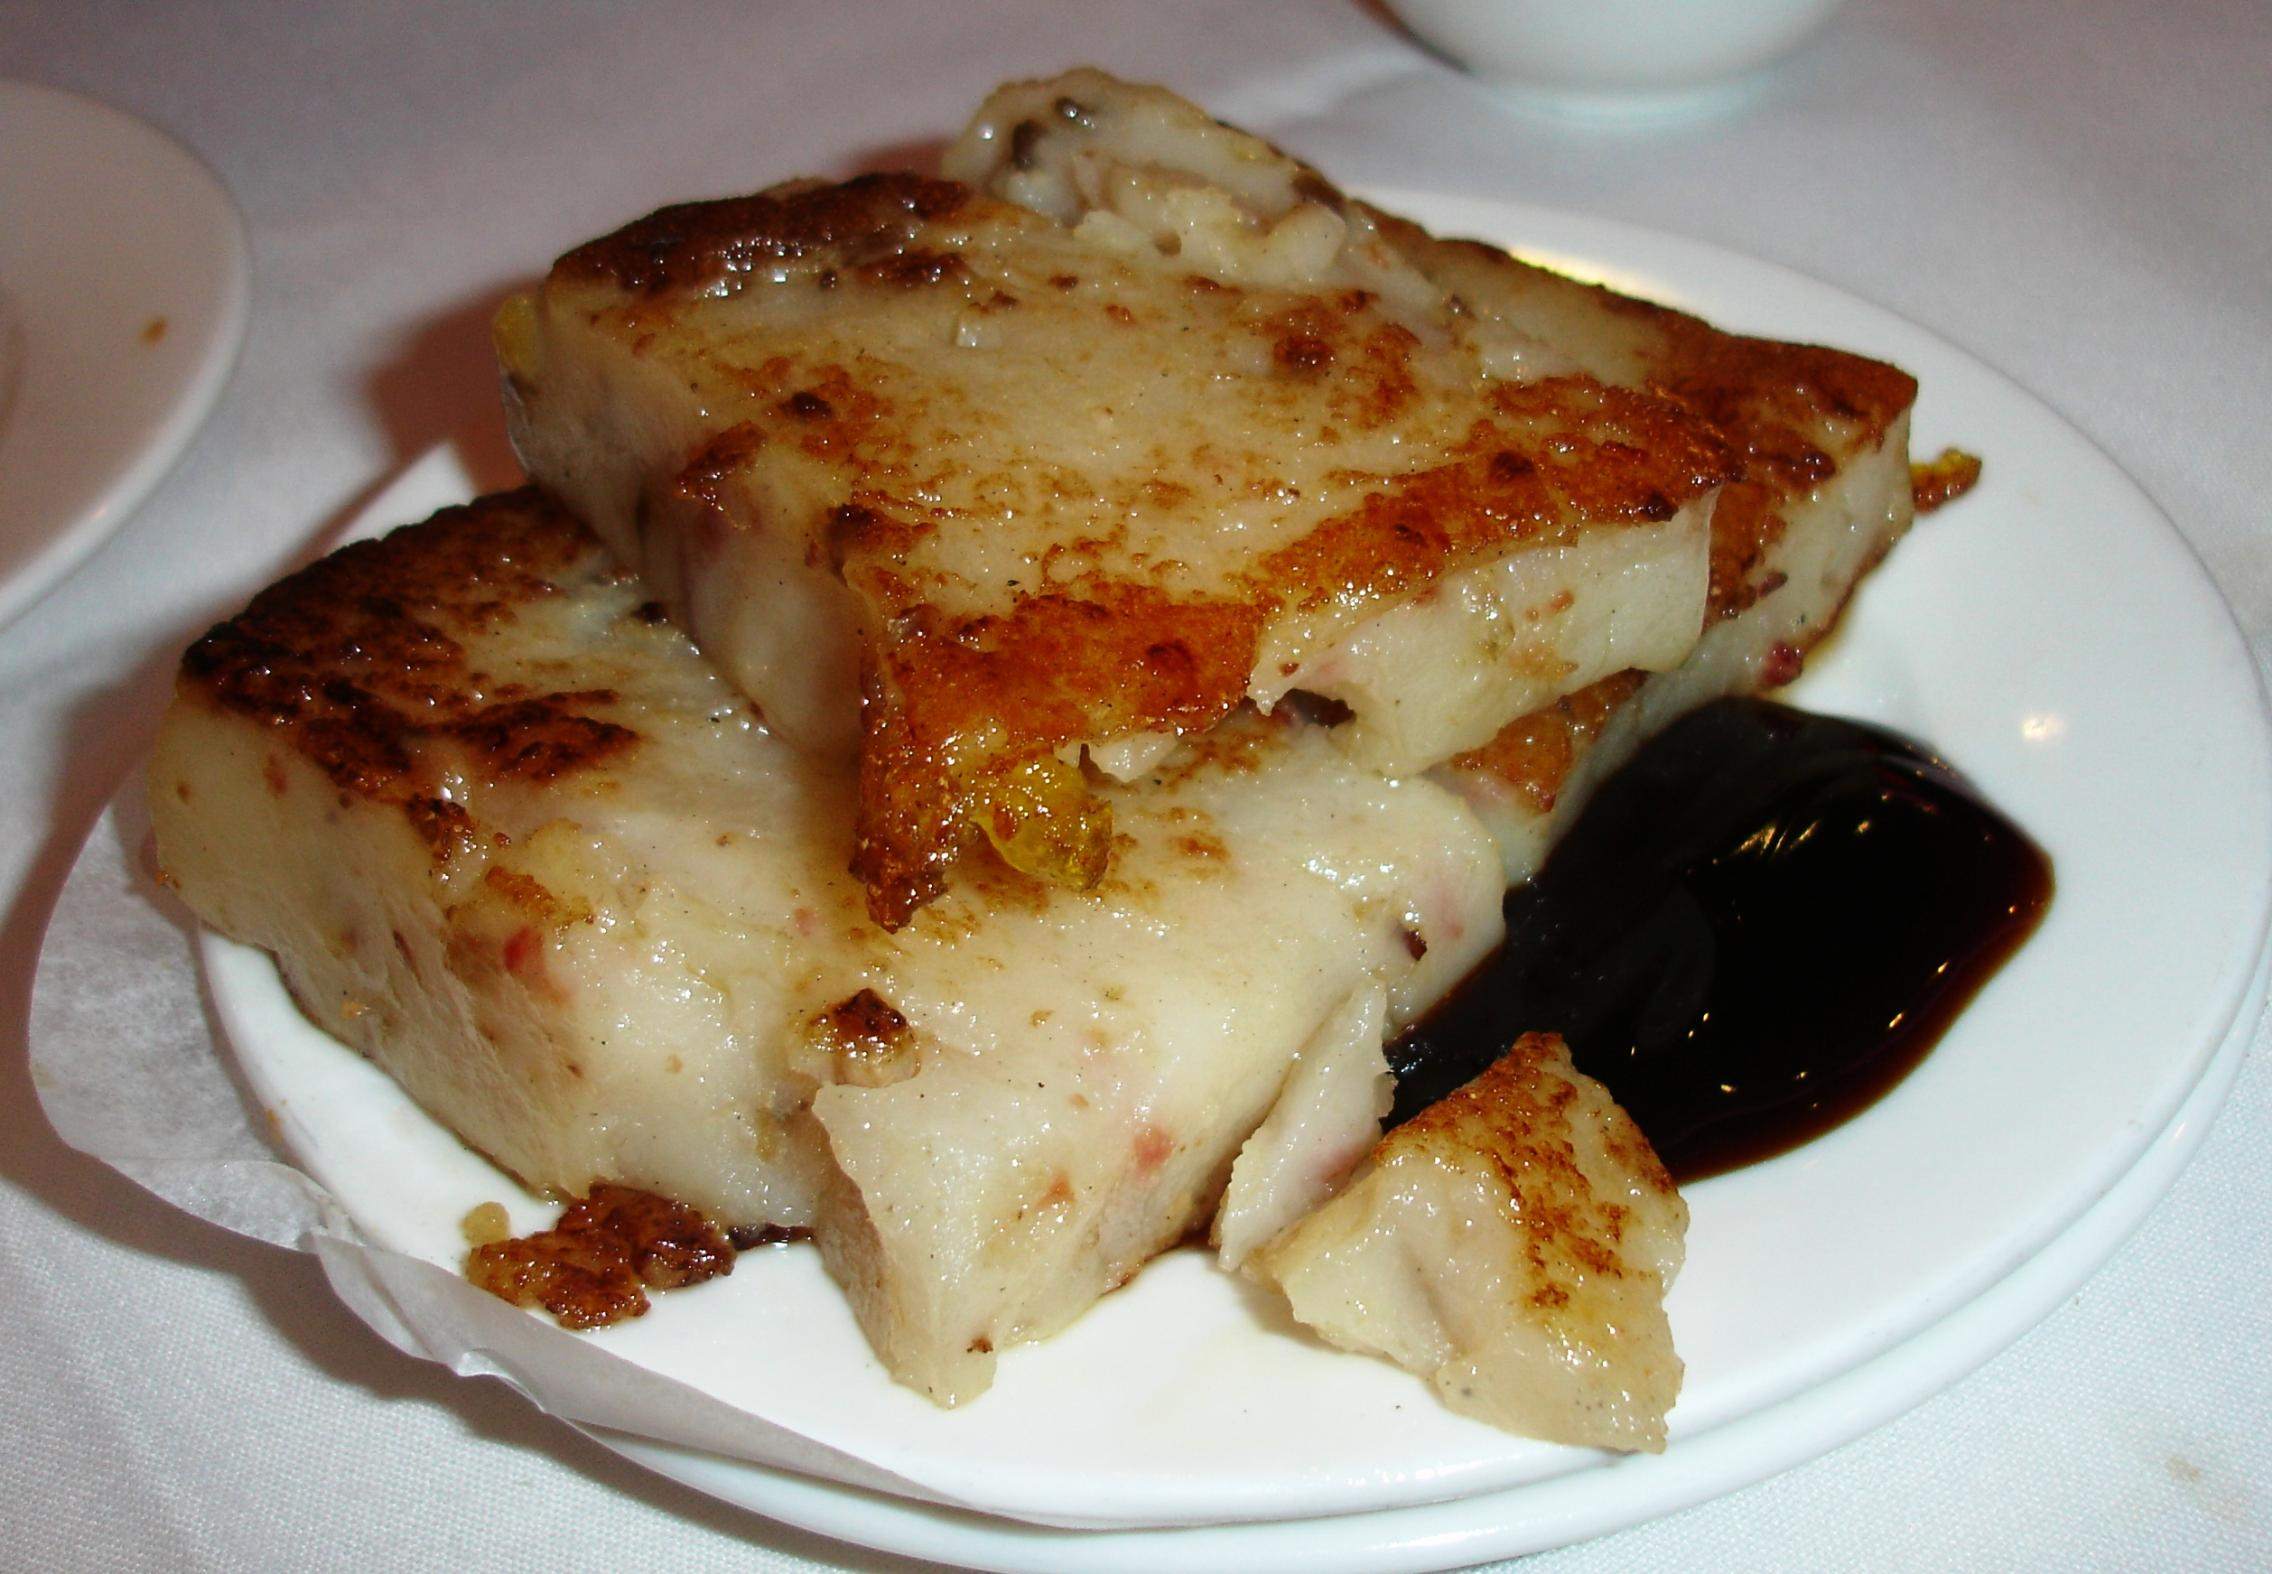 One of our favorite dim sum items anywhere is turnip cake, here called radish cake. A slice is cut from a starchy rice flour block that includes daikon radish and often bits of meat or seafood. The slice is pan-fried and served with sauce.